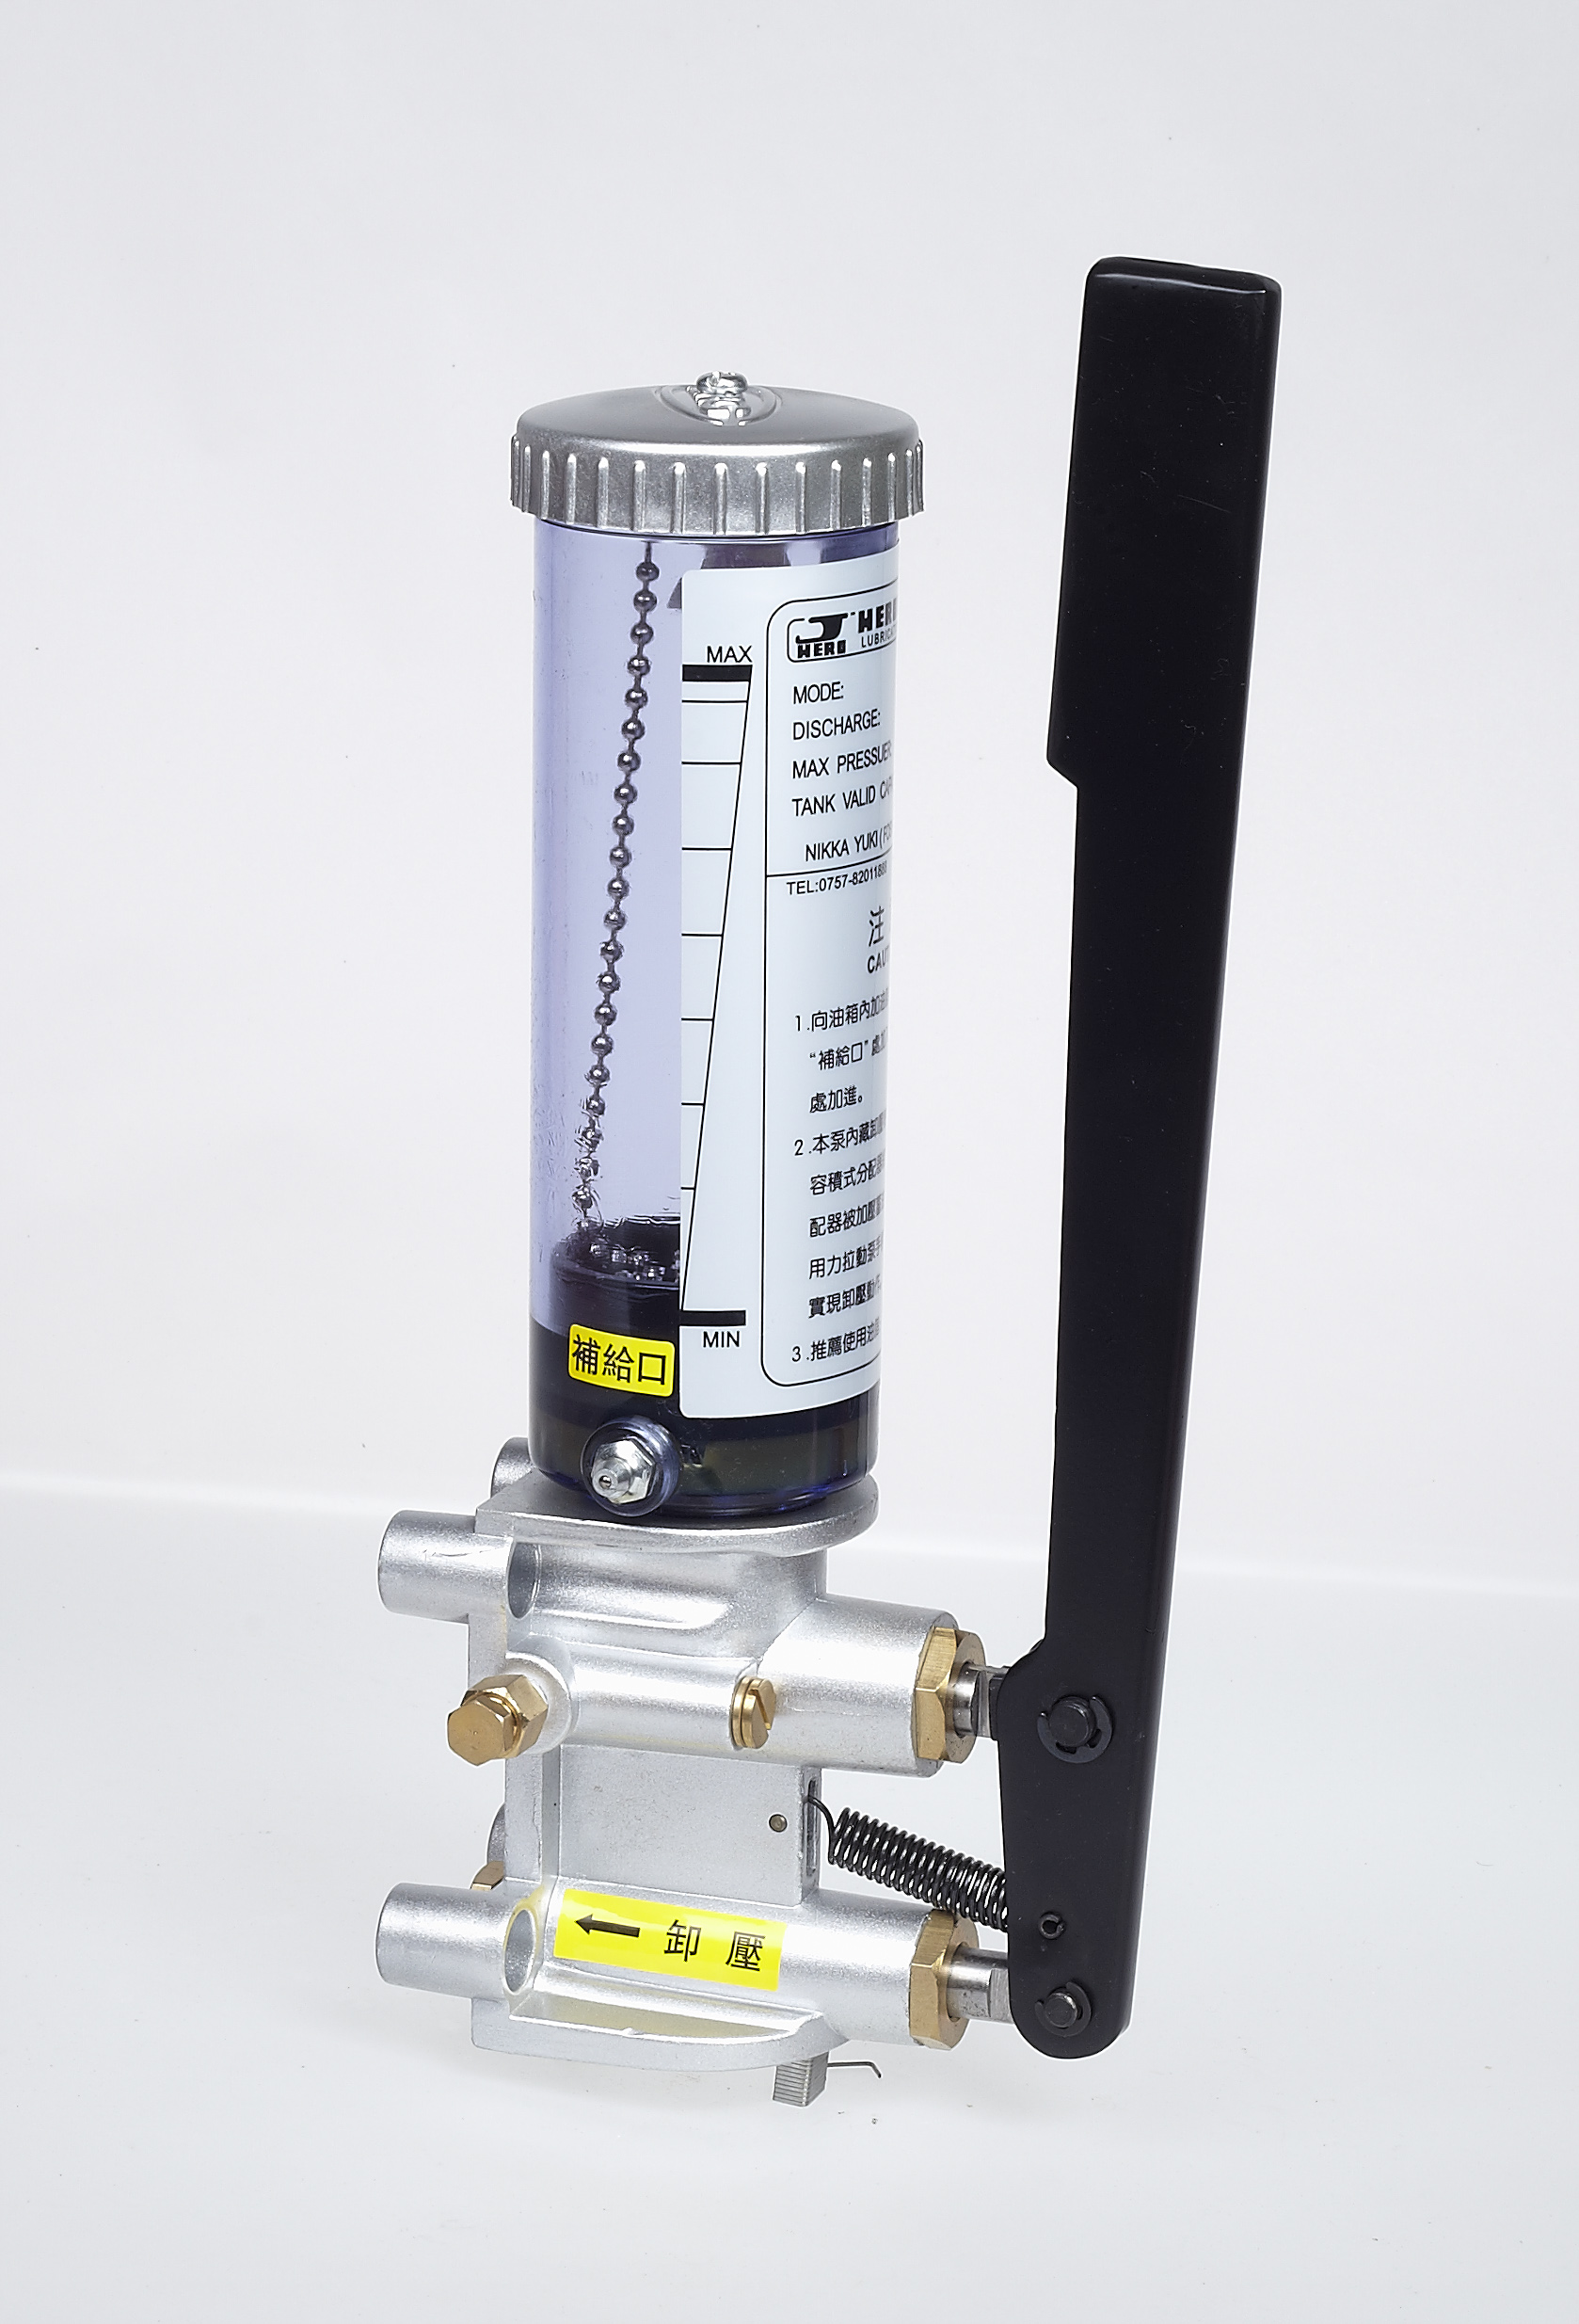 Oil Hand Pump >> Herg Lubrication | Gama Automation